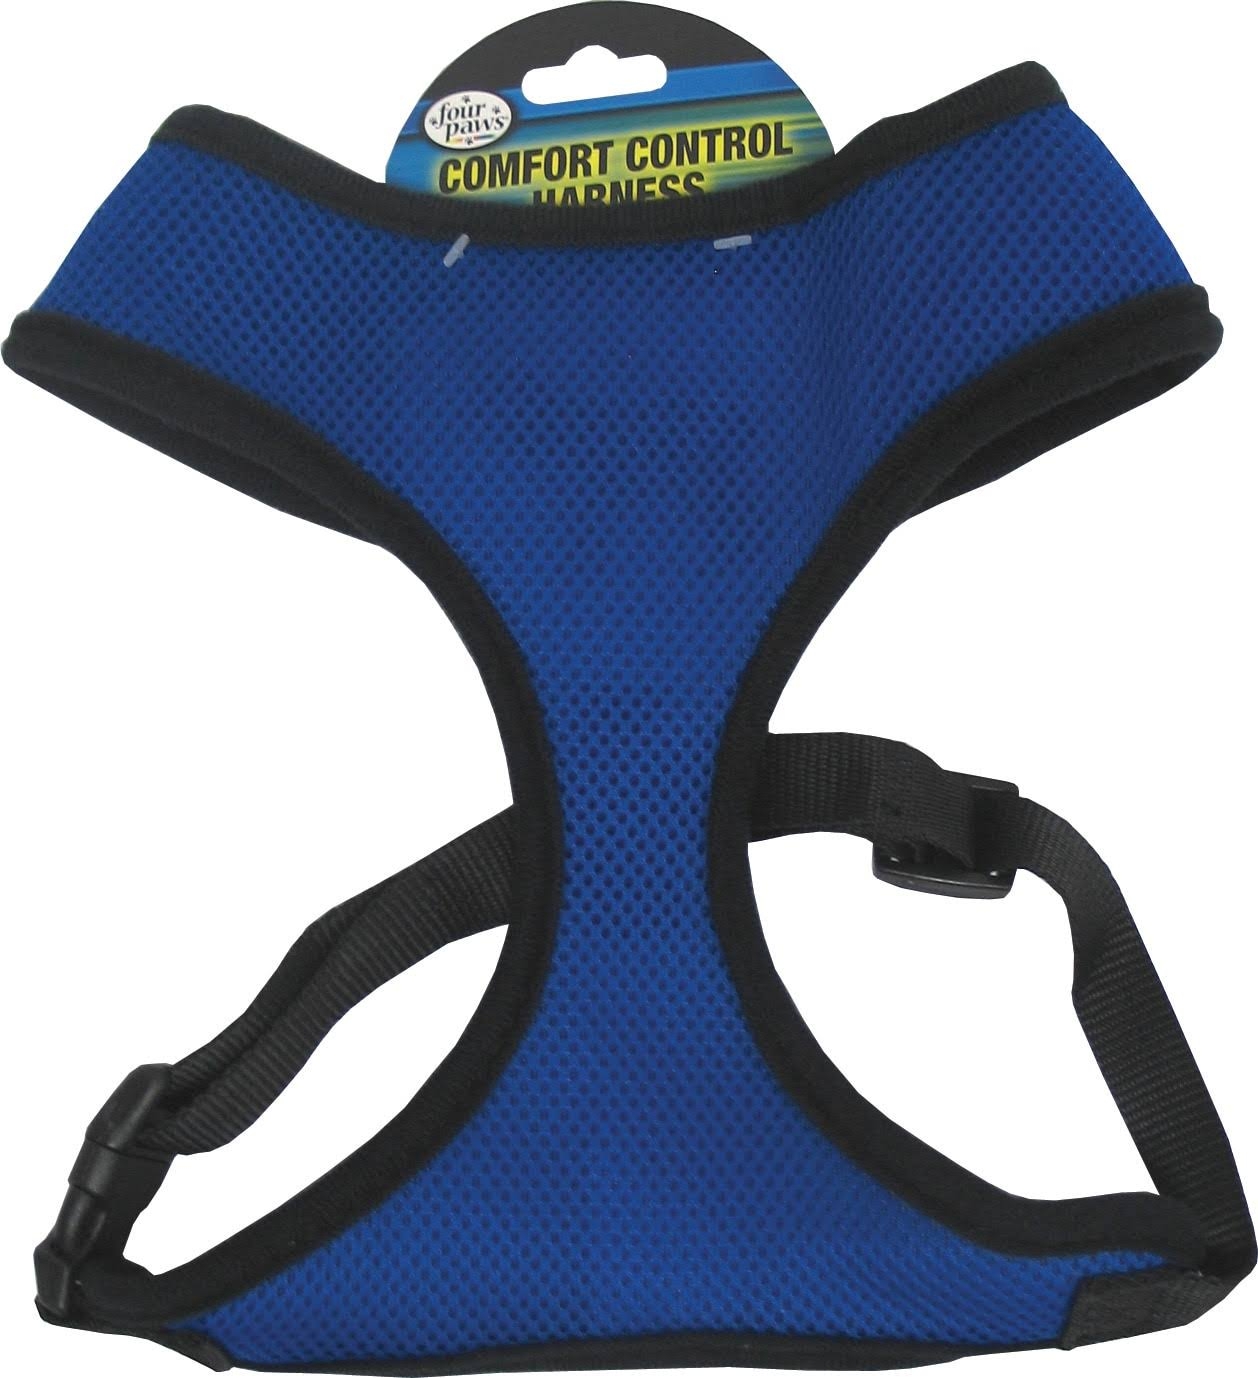 Four Paws Comfort Control Dog Harness - Blue, Small